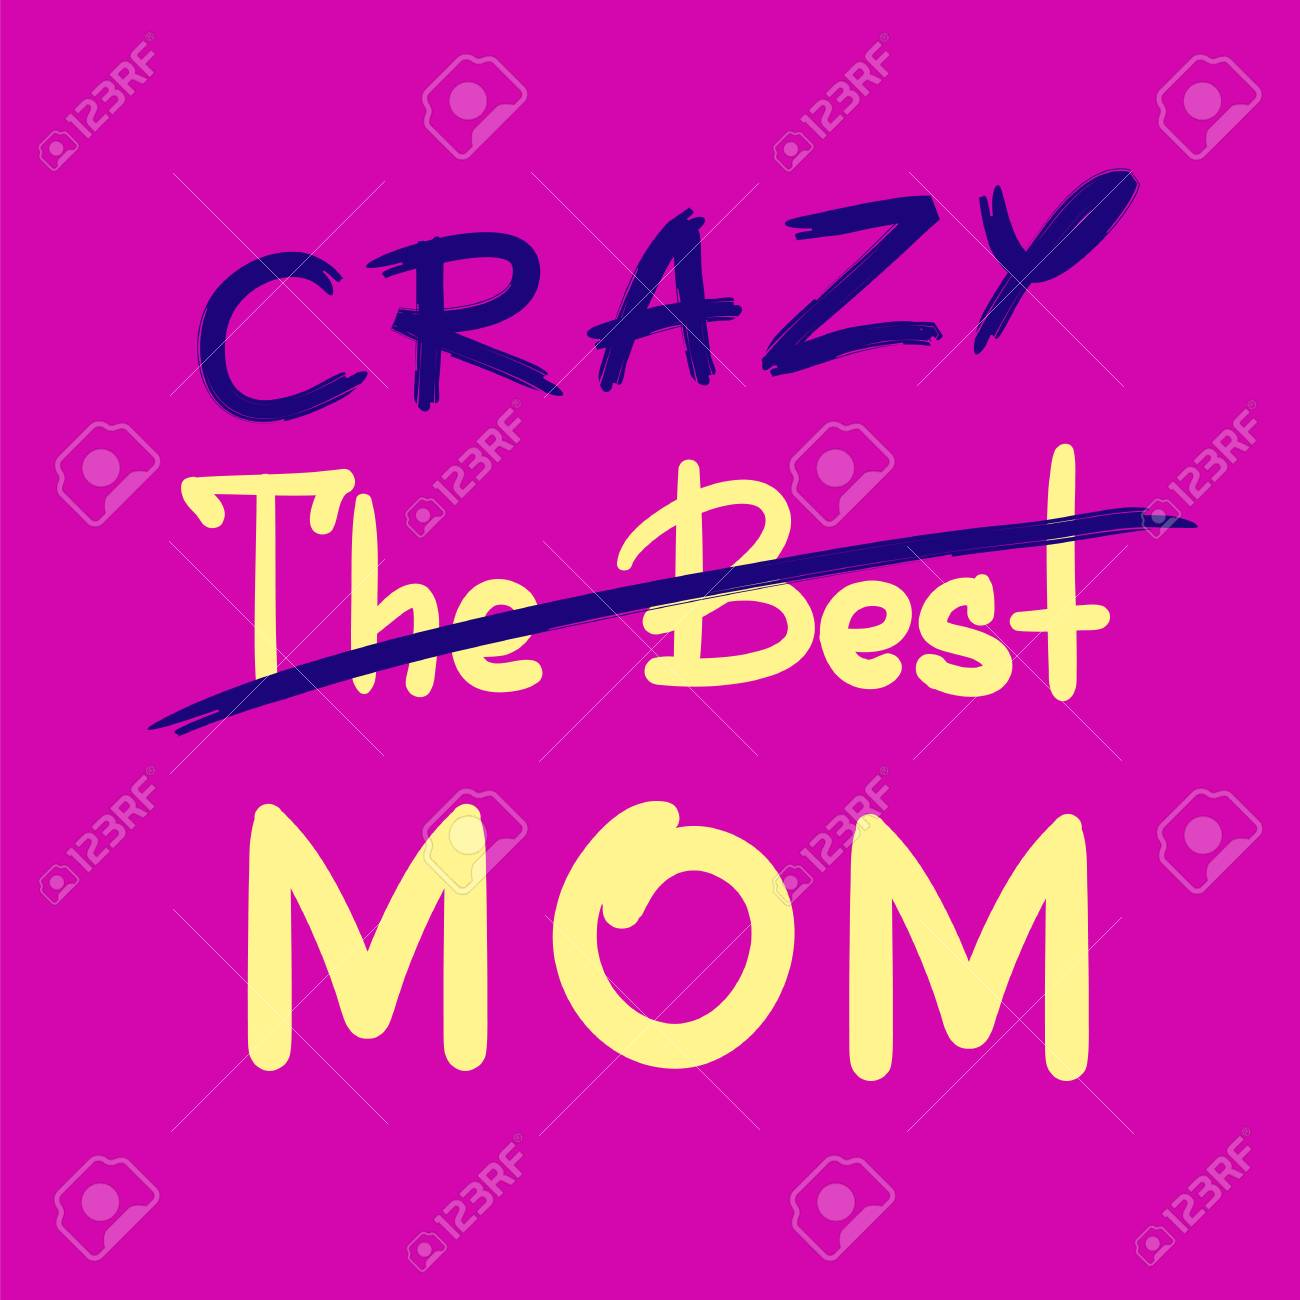 The best crazy mom - handwritten funny motivational quote. Print..